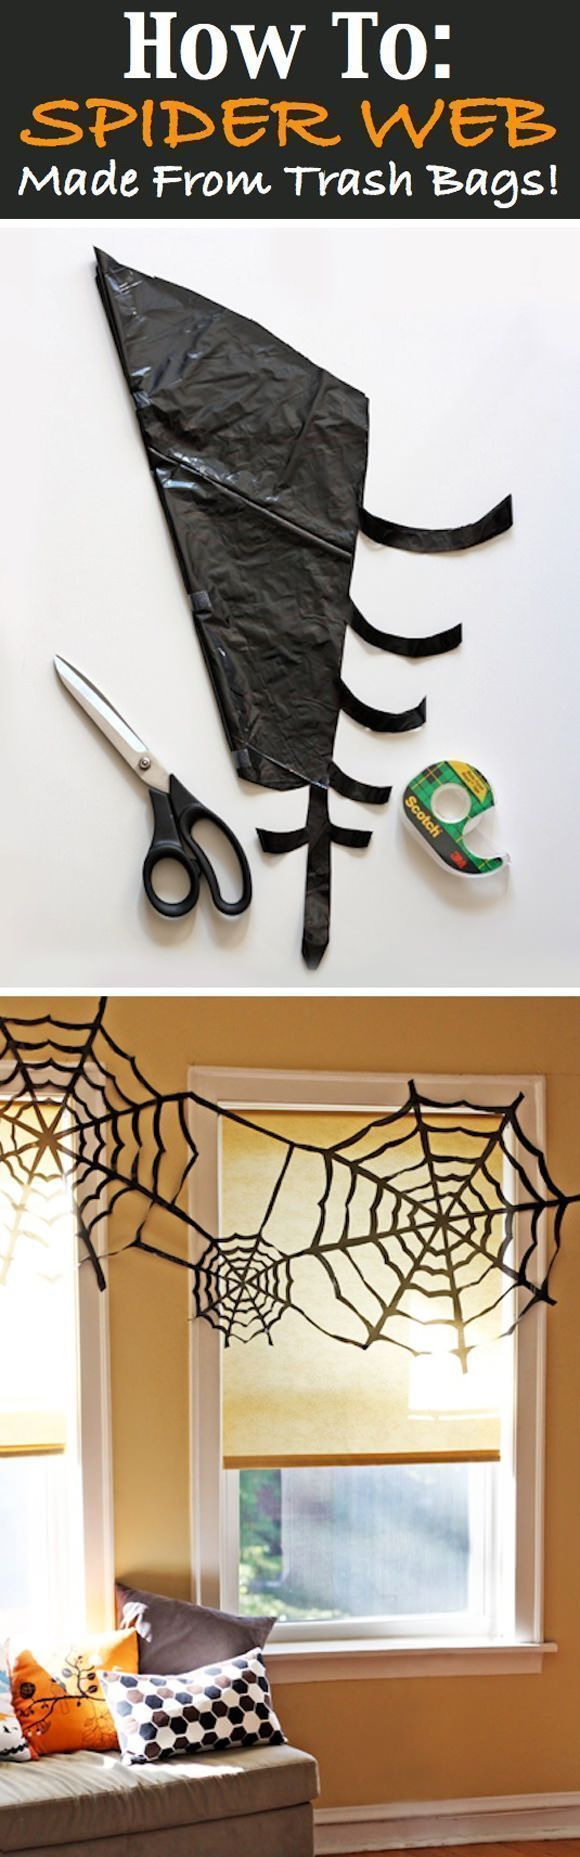 DIY Spiderwebs Made From Trashbags